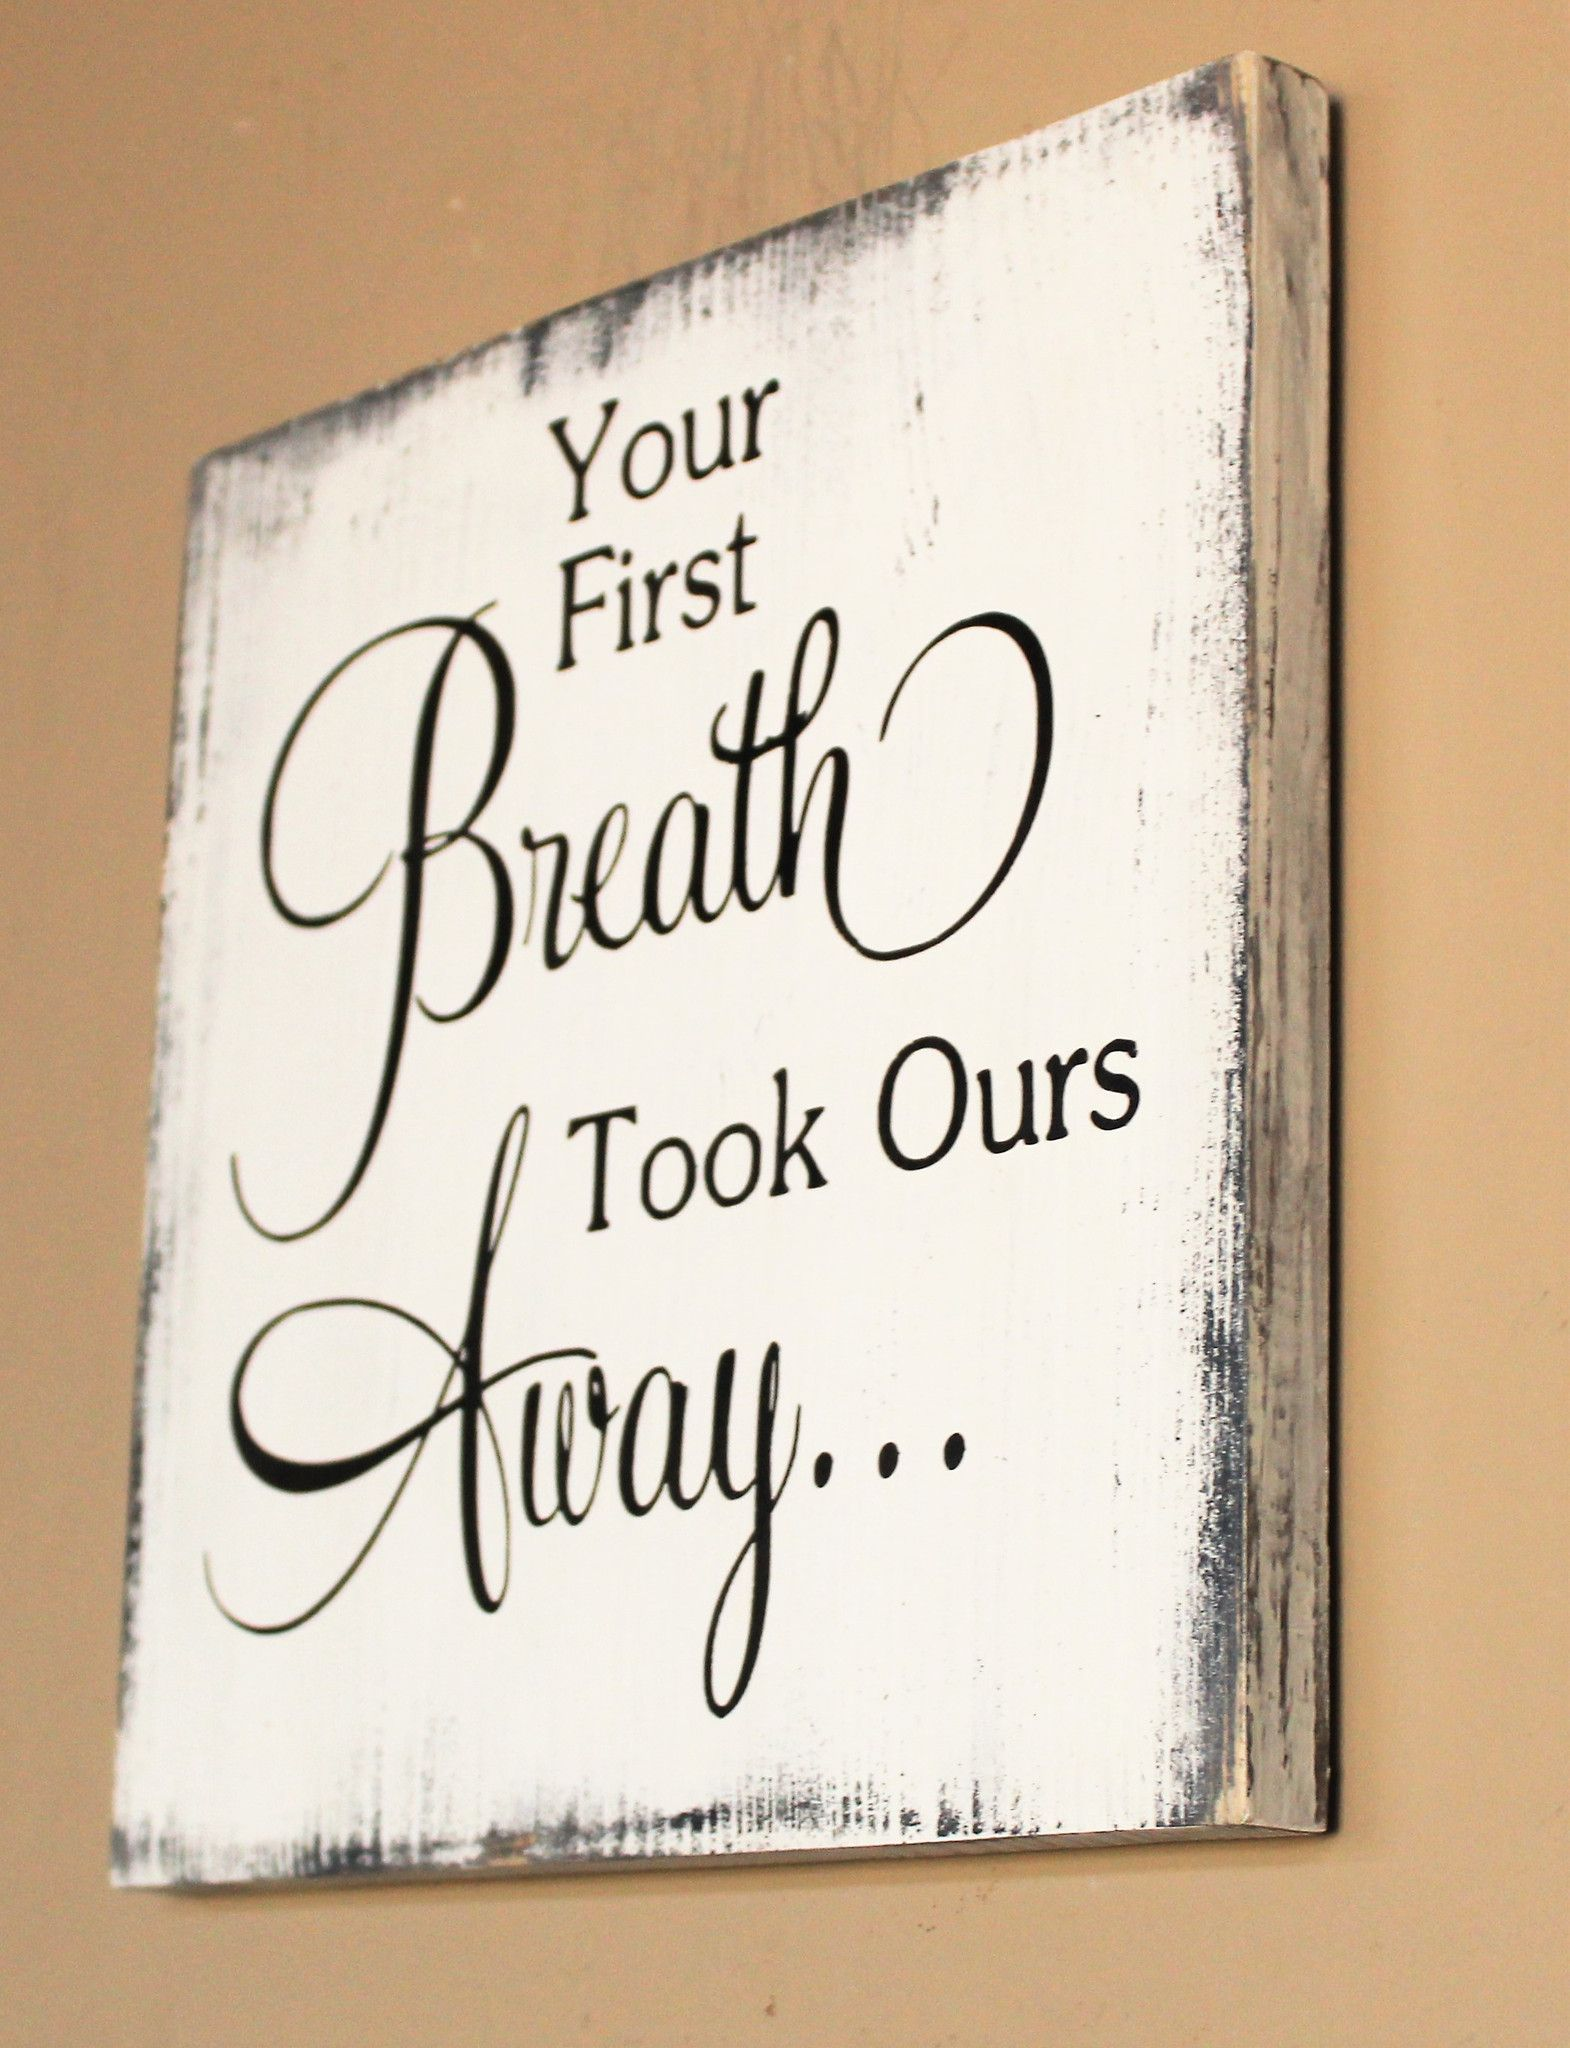 Quotes For Baby Shower Your First Breath Took Ours Away Wood Sign Gift For Baby Baby